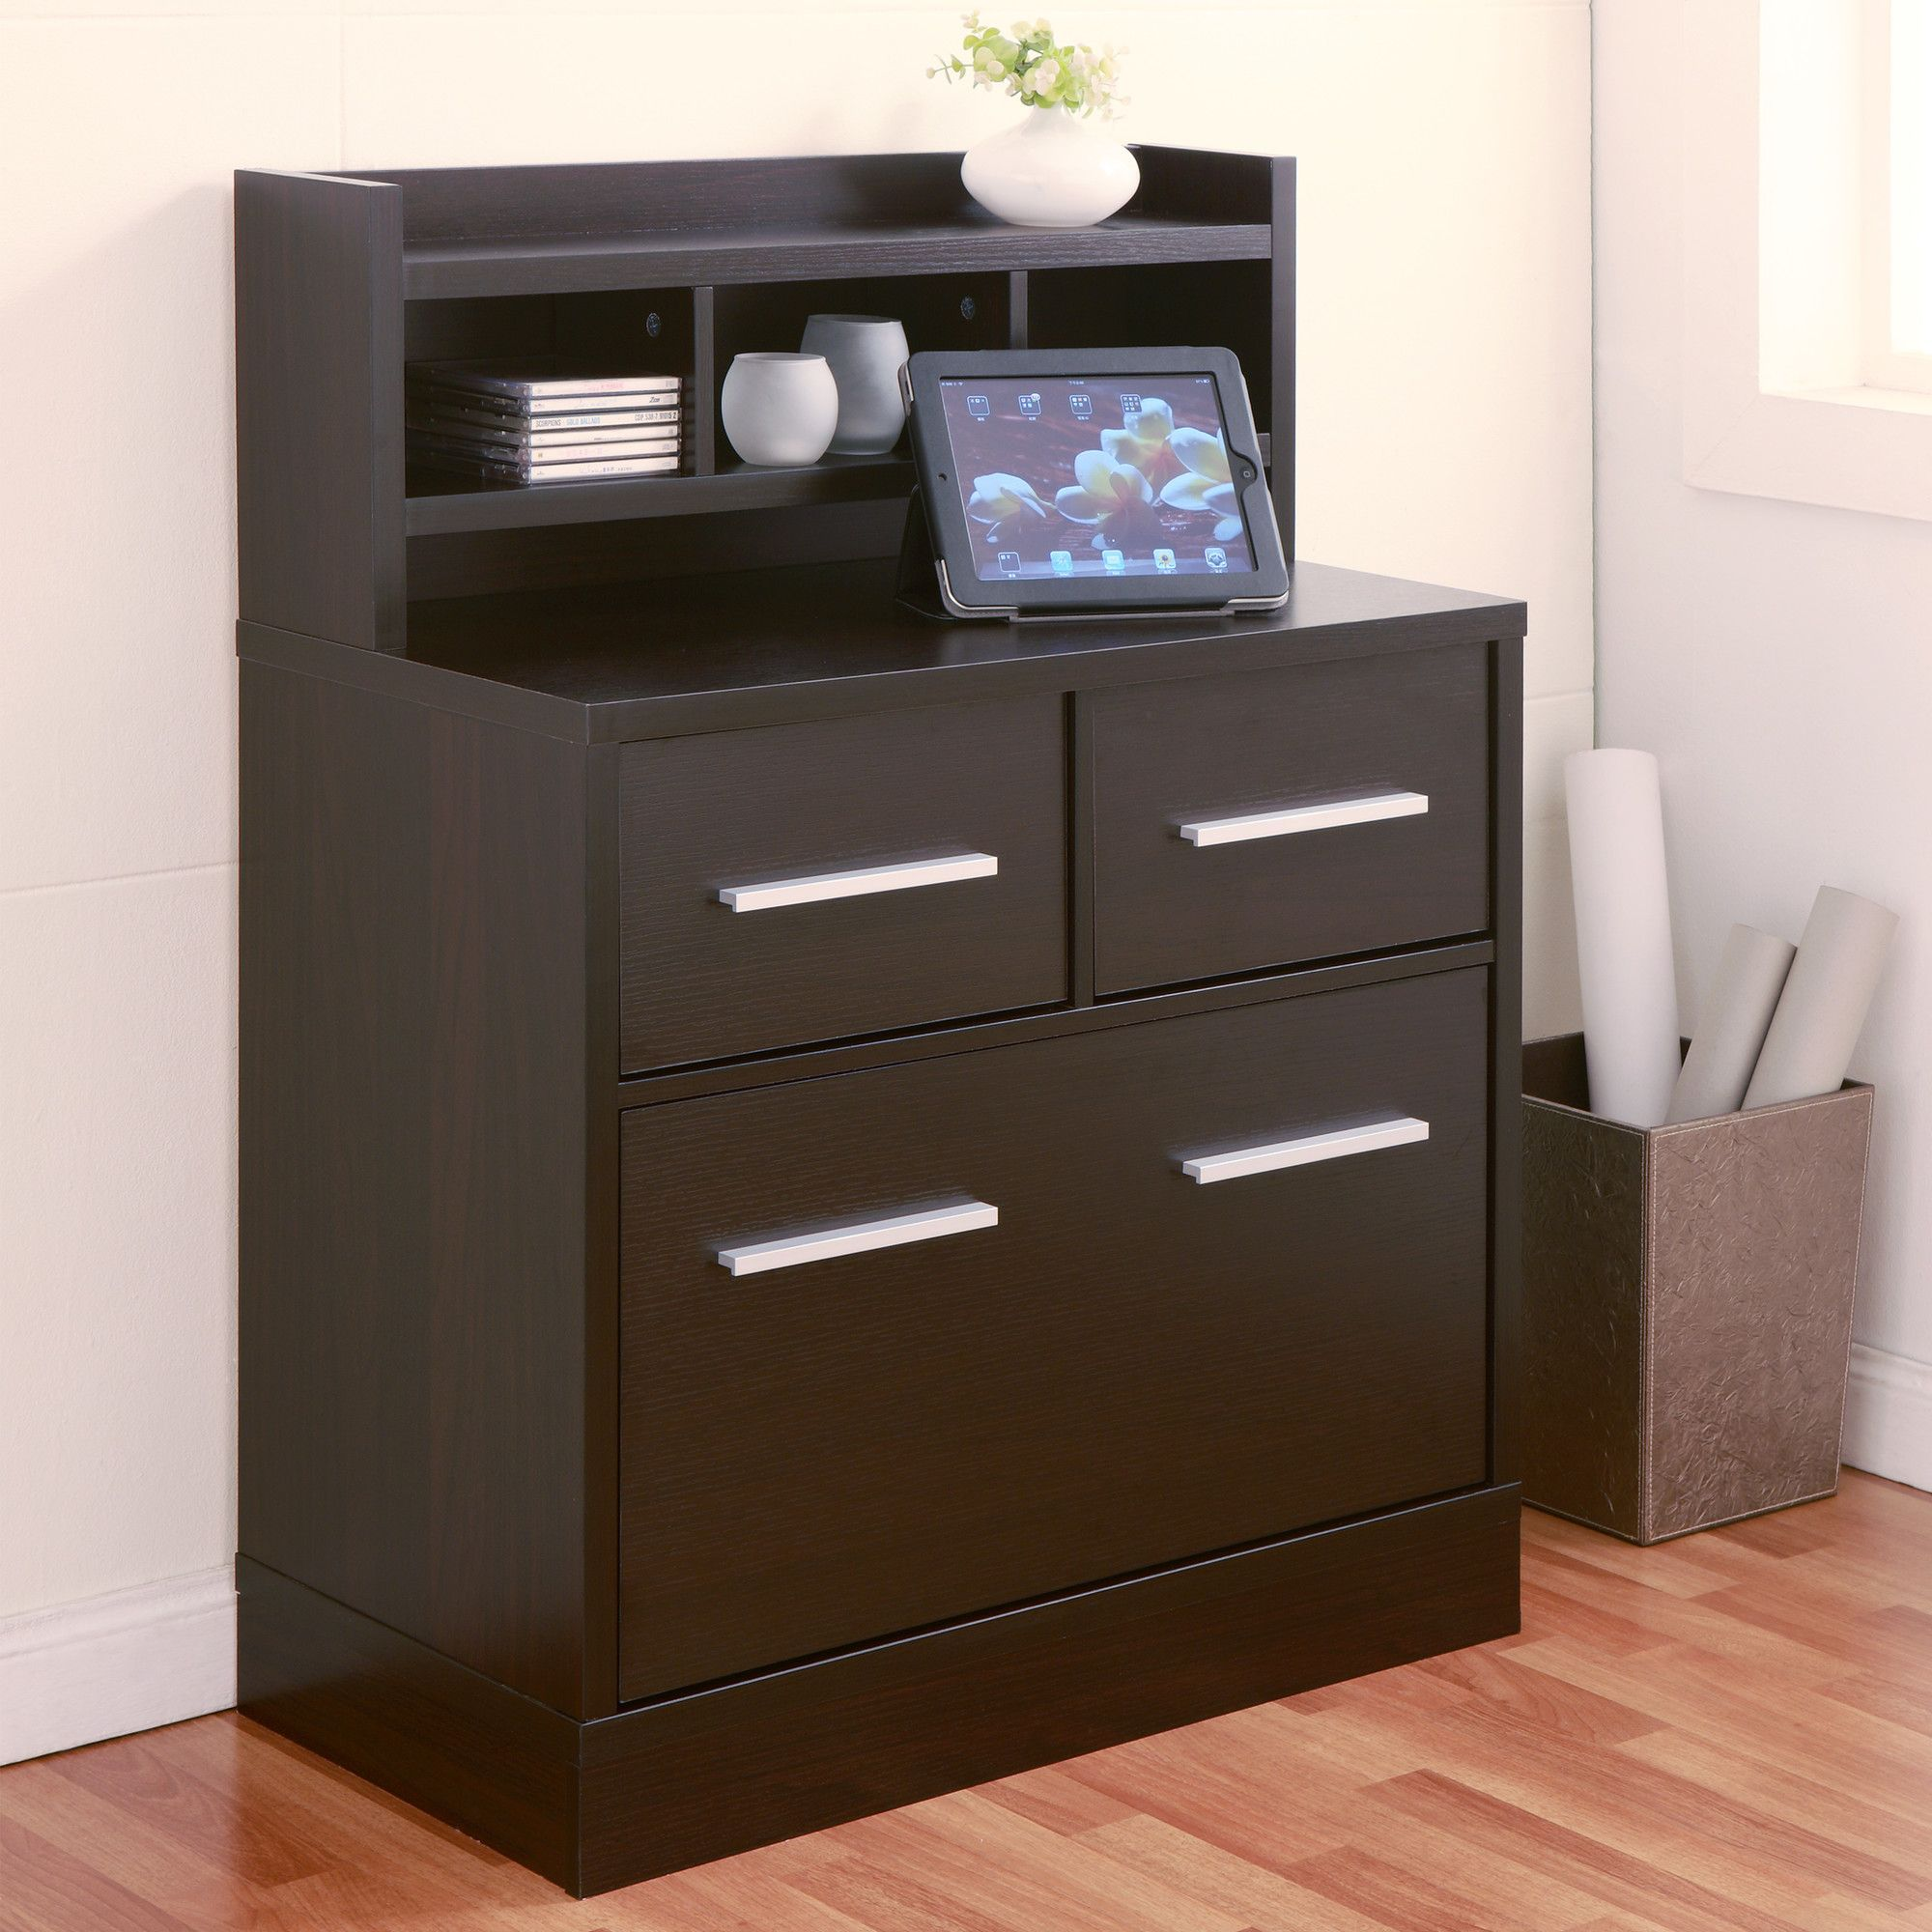 with drawers storage wood inspiring stainless three nice office walmart lateral locks cabinet ideas small drawer cabinets fireproof filing cheap for ipads at steel design file